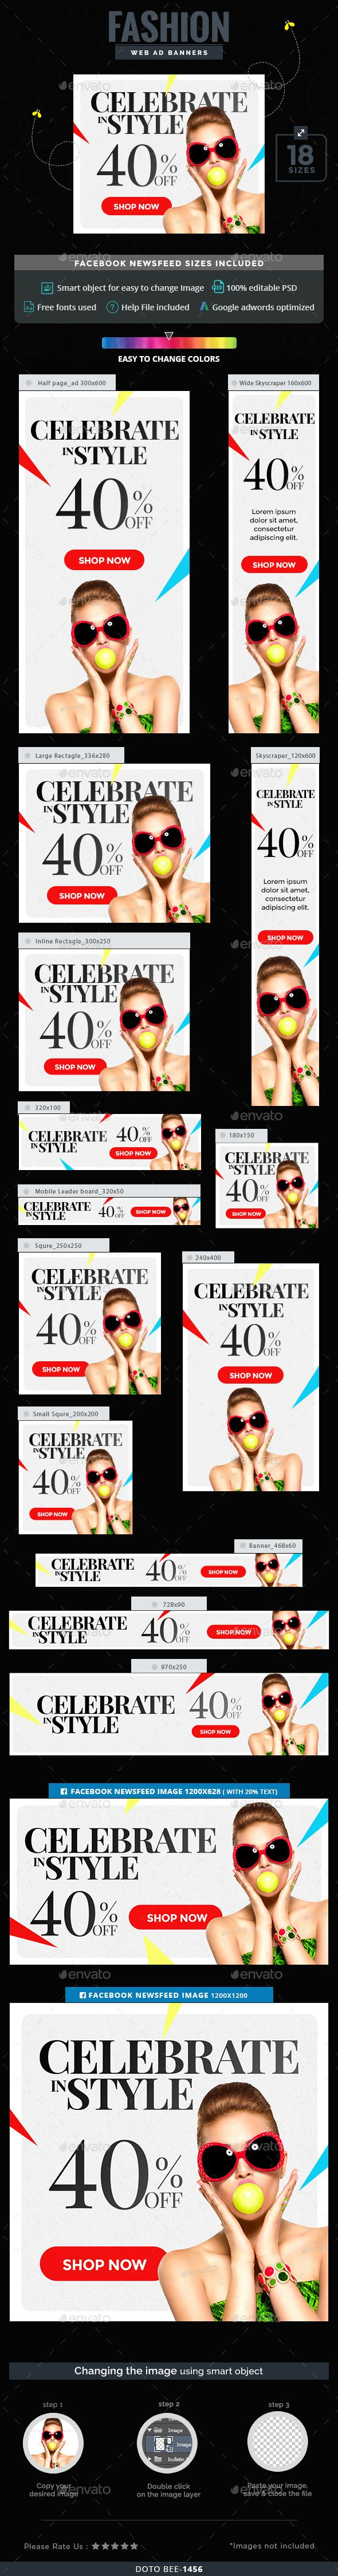 Fashion Web Banners Template PSD. Download here: http://graphicriver.net/item/fashion-banners/16535404?ref=ksioks